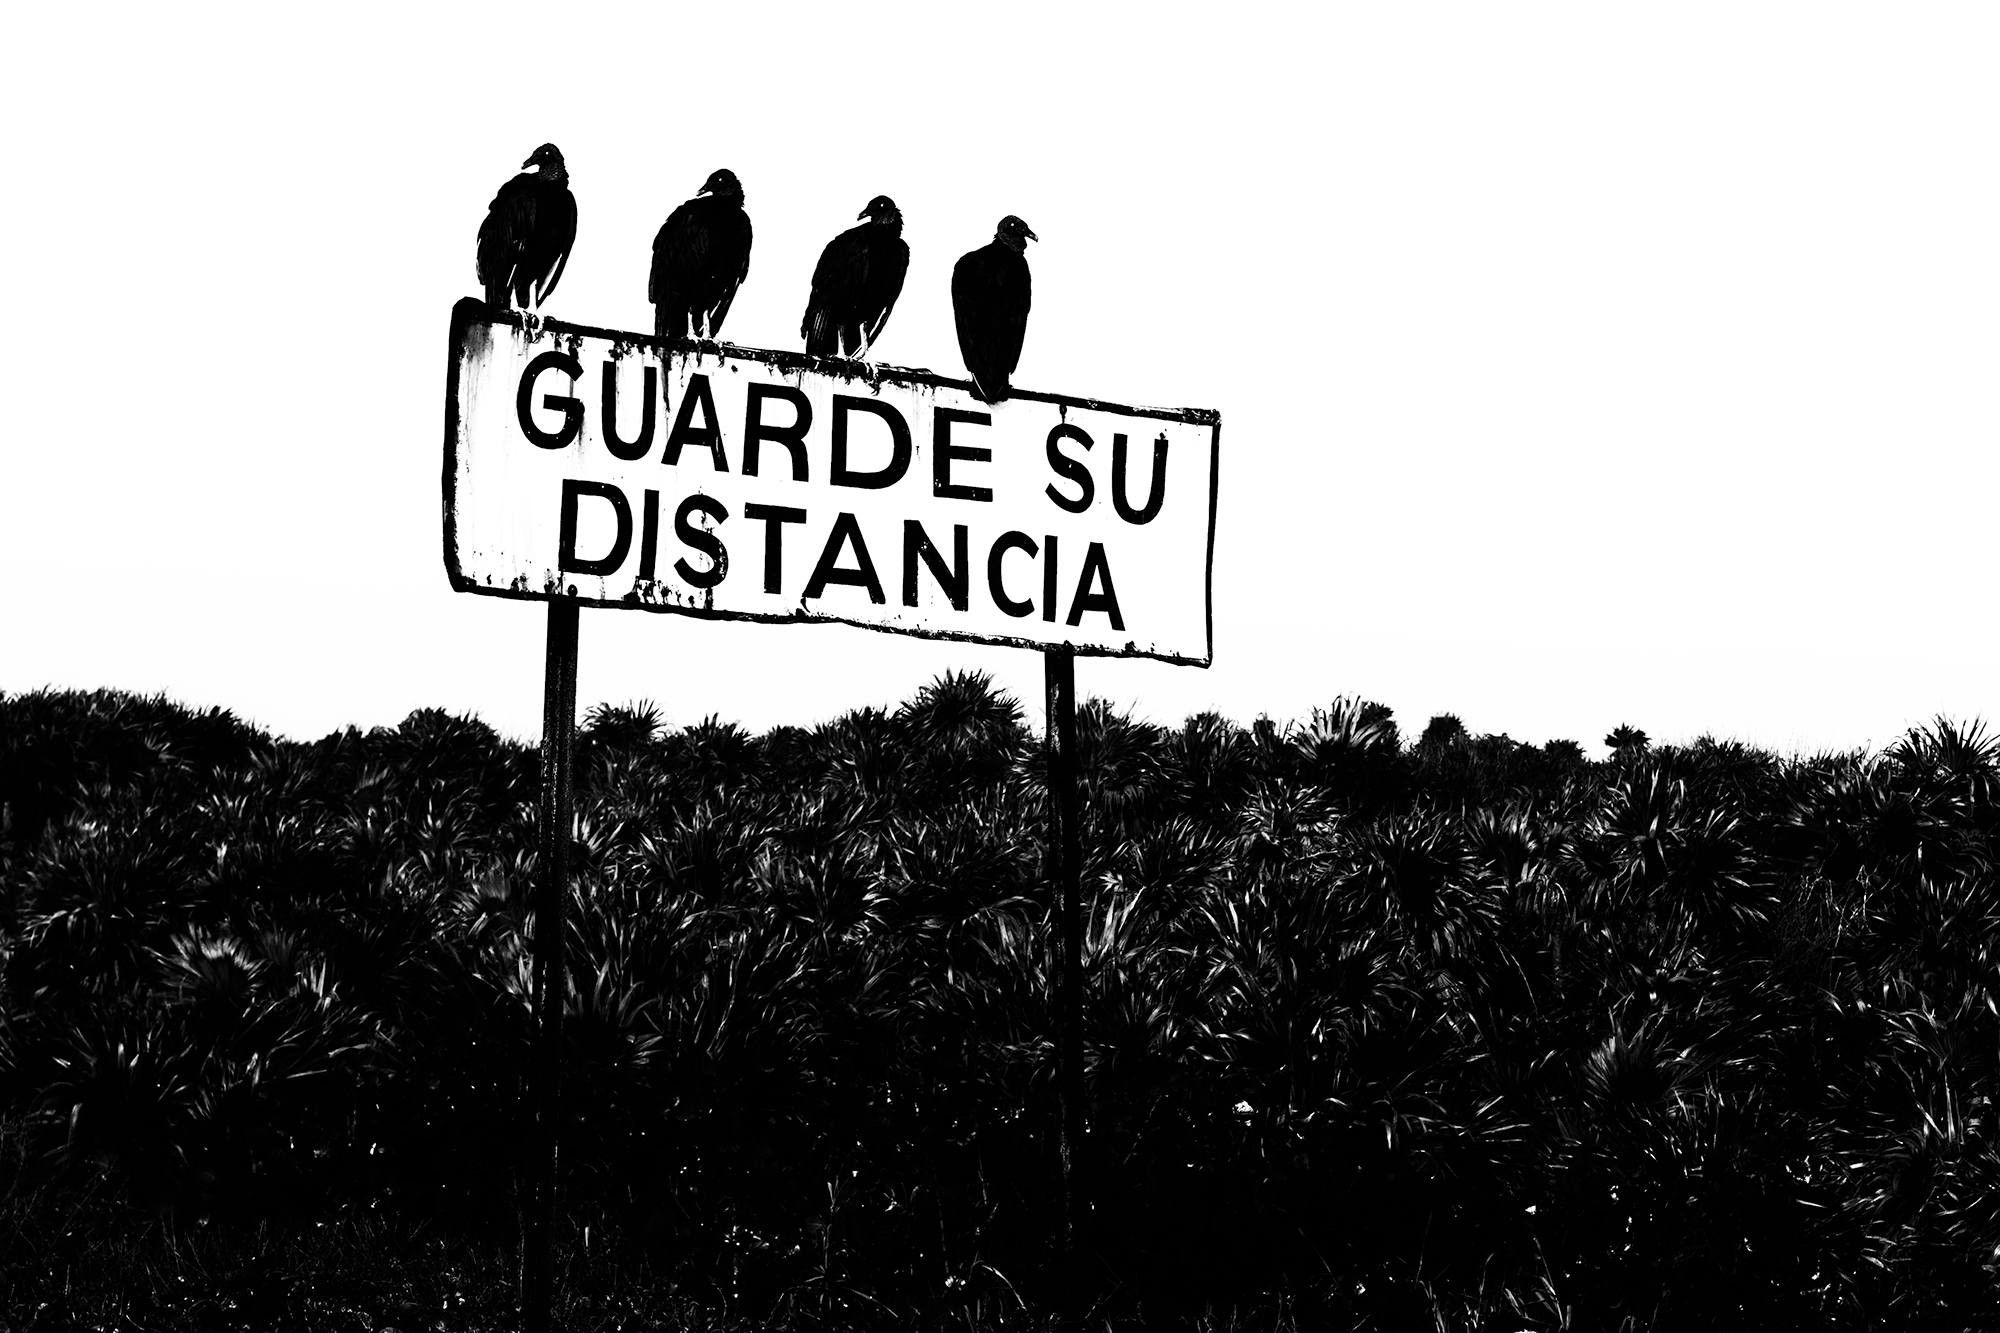 Guarda su distancia. Cozumel, Mexico, 2017